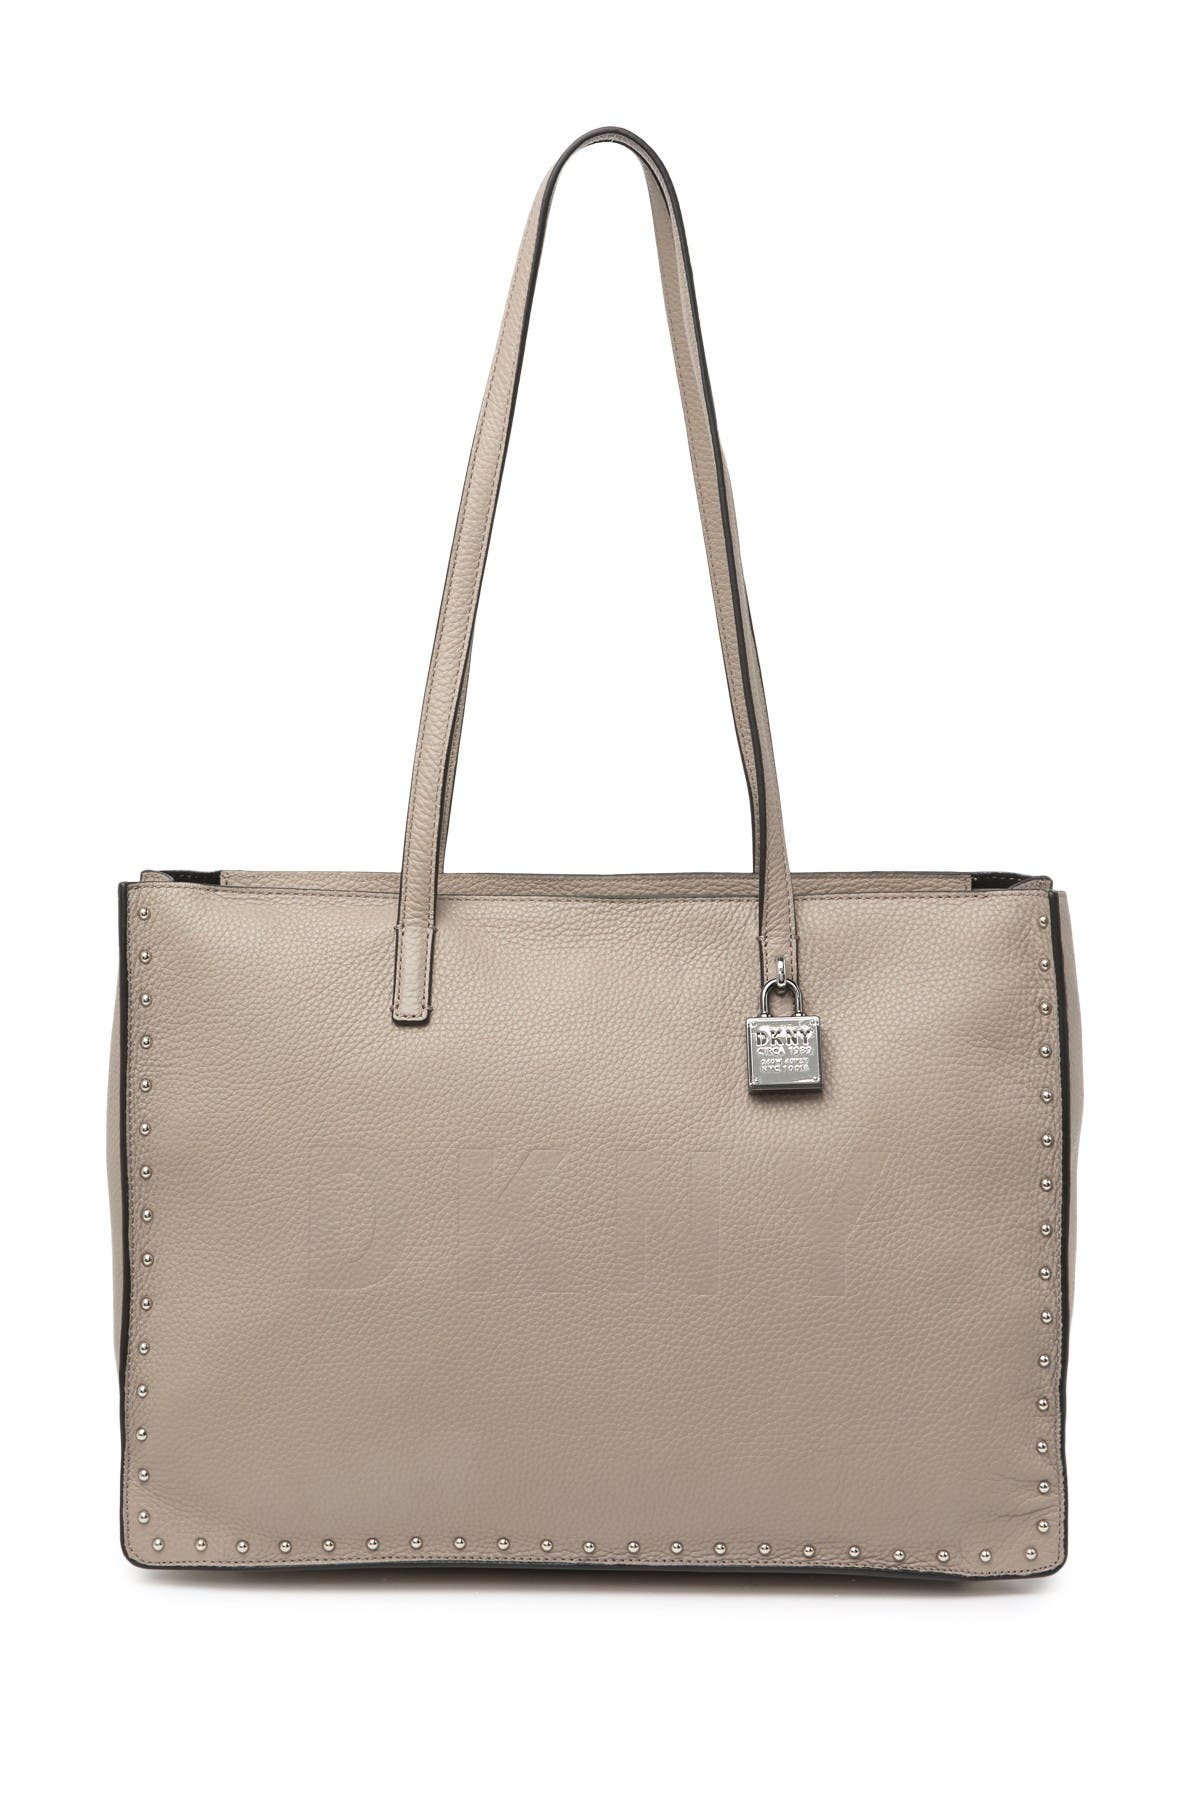 Image of DKNY Commuter Large Logo Tote Bag